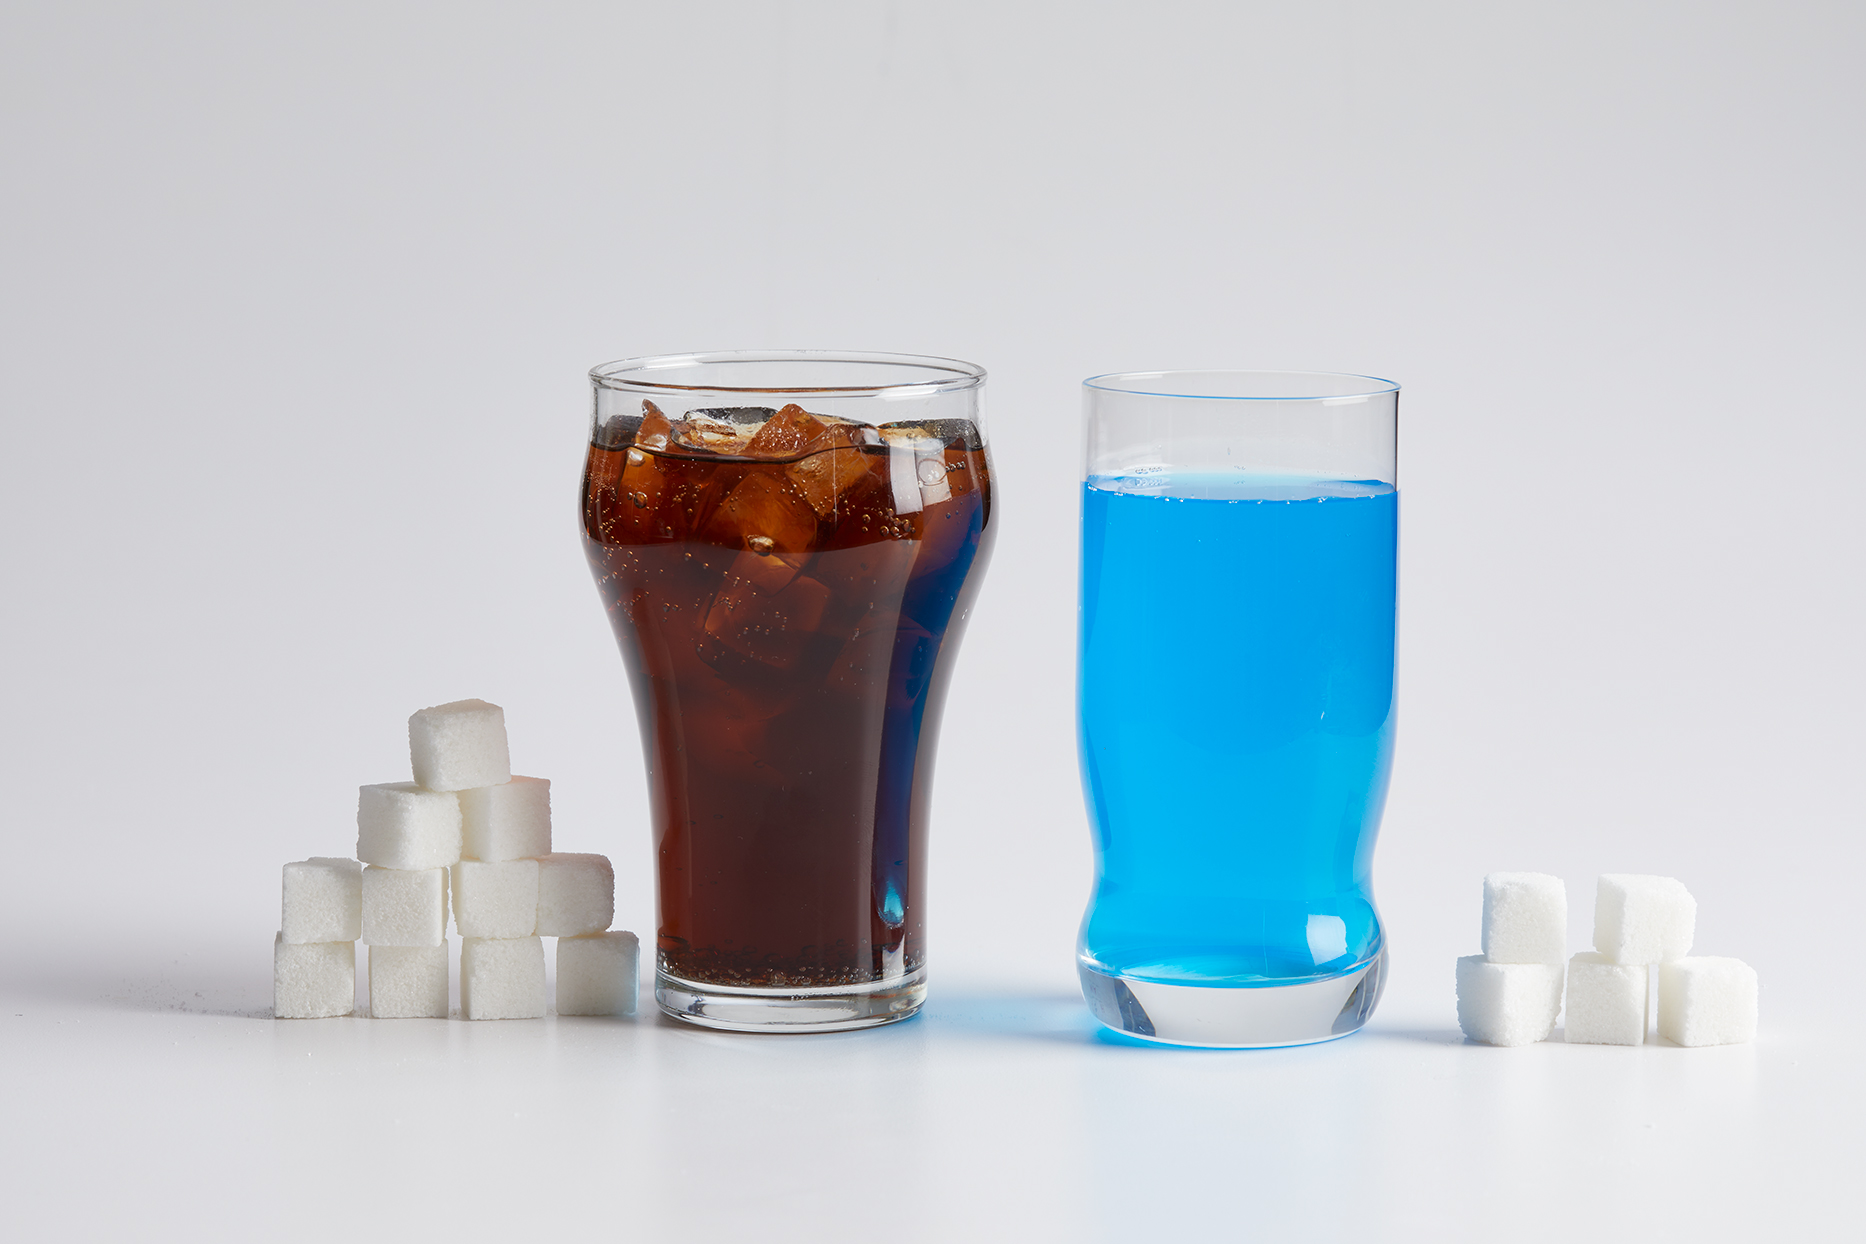 Soda and energy drink with piles of sugar cubes next to each glass on white background